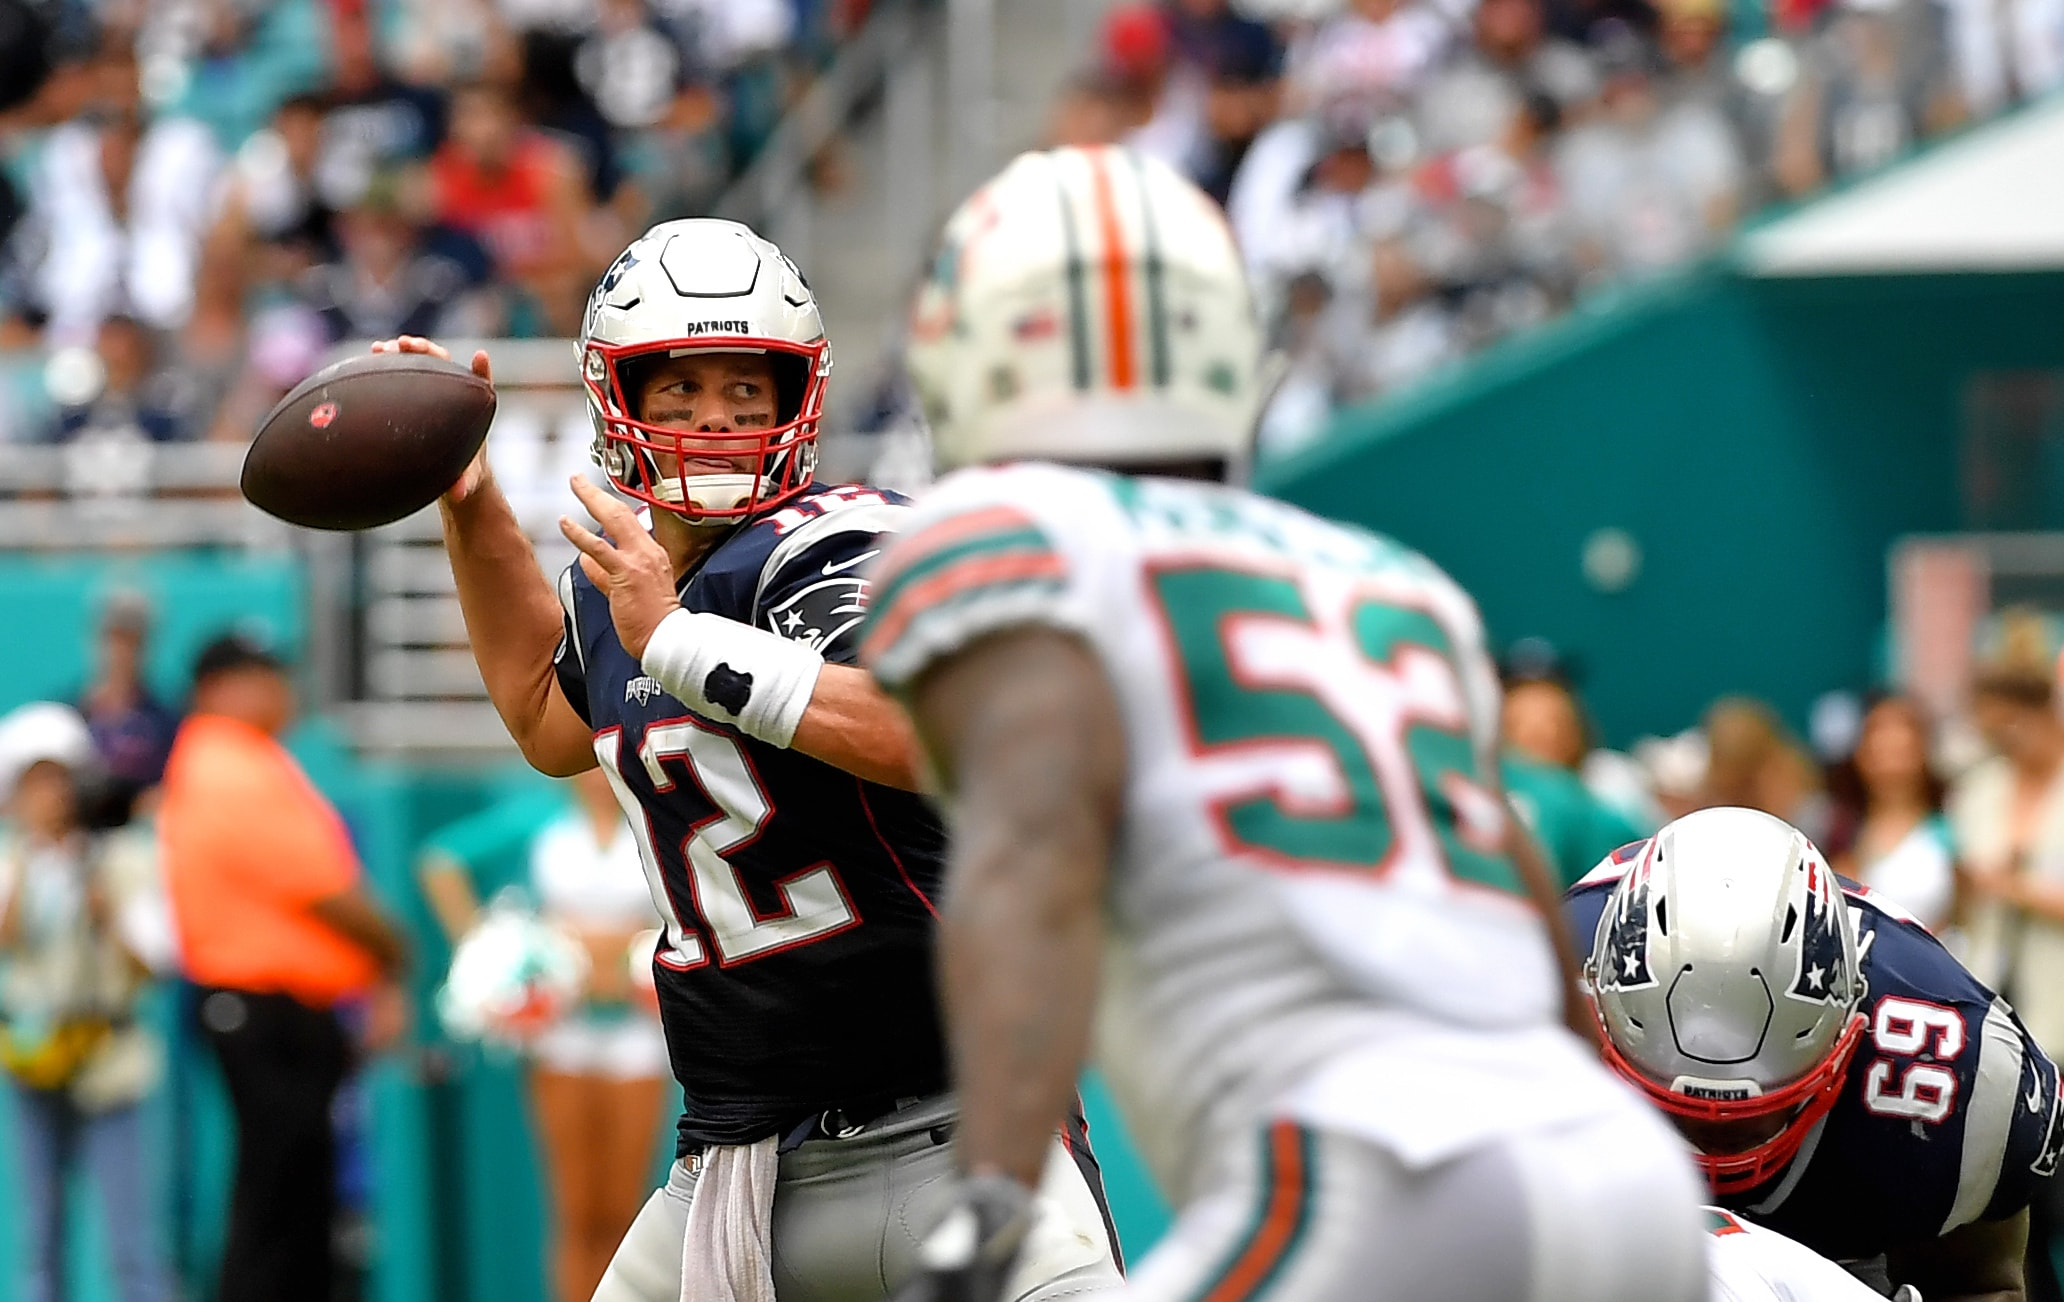 Dolphins linebacker says referee told him not to touch Tom Brady